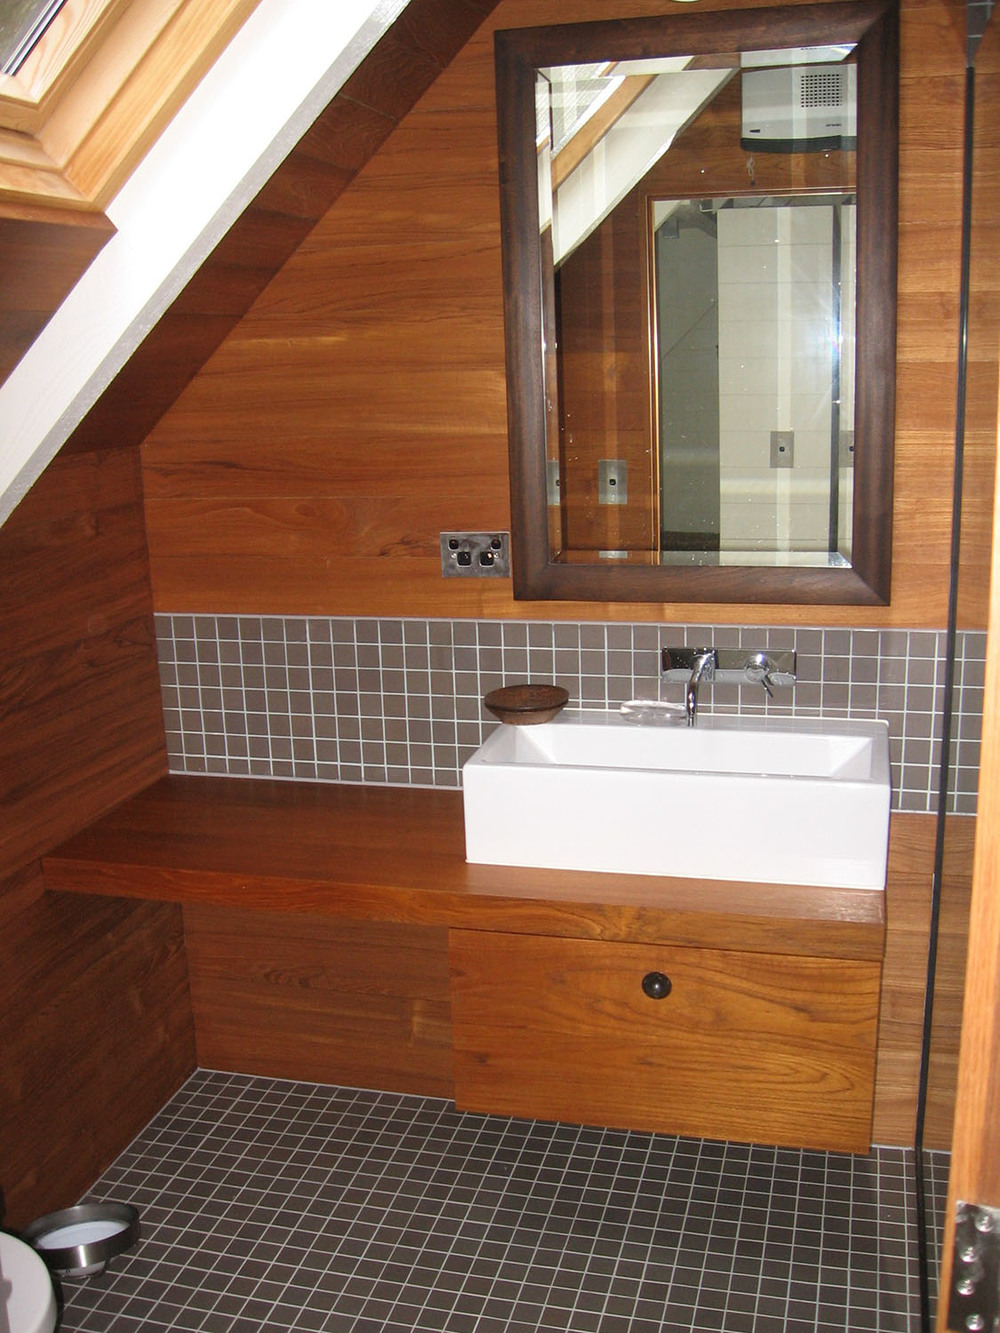 Teak ensuite bathroom unit